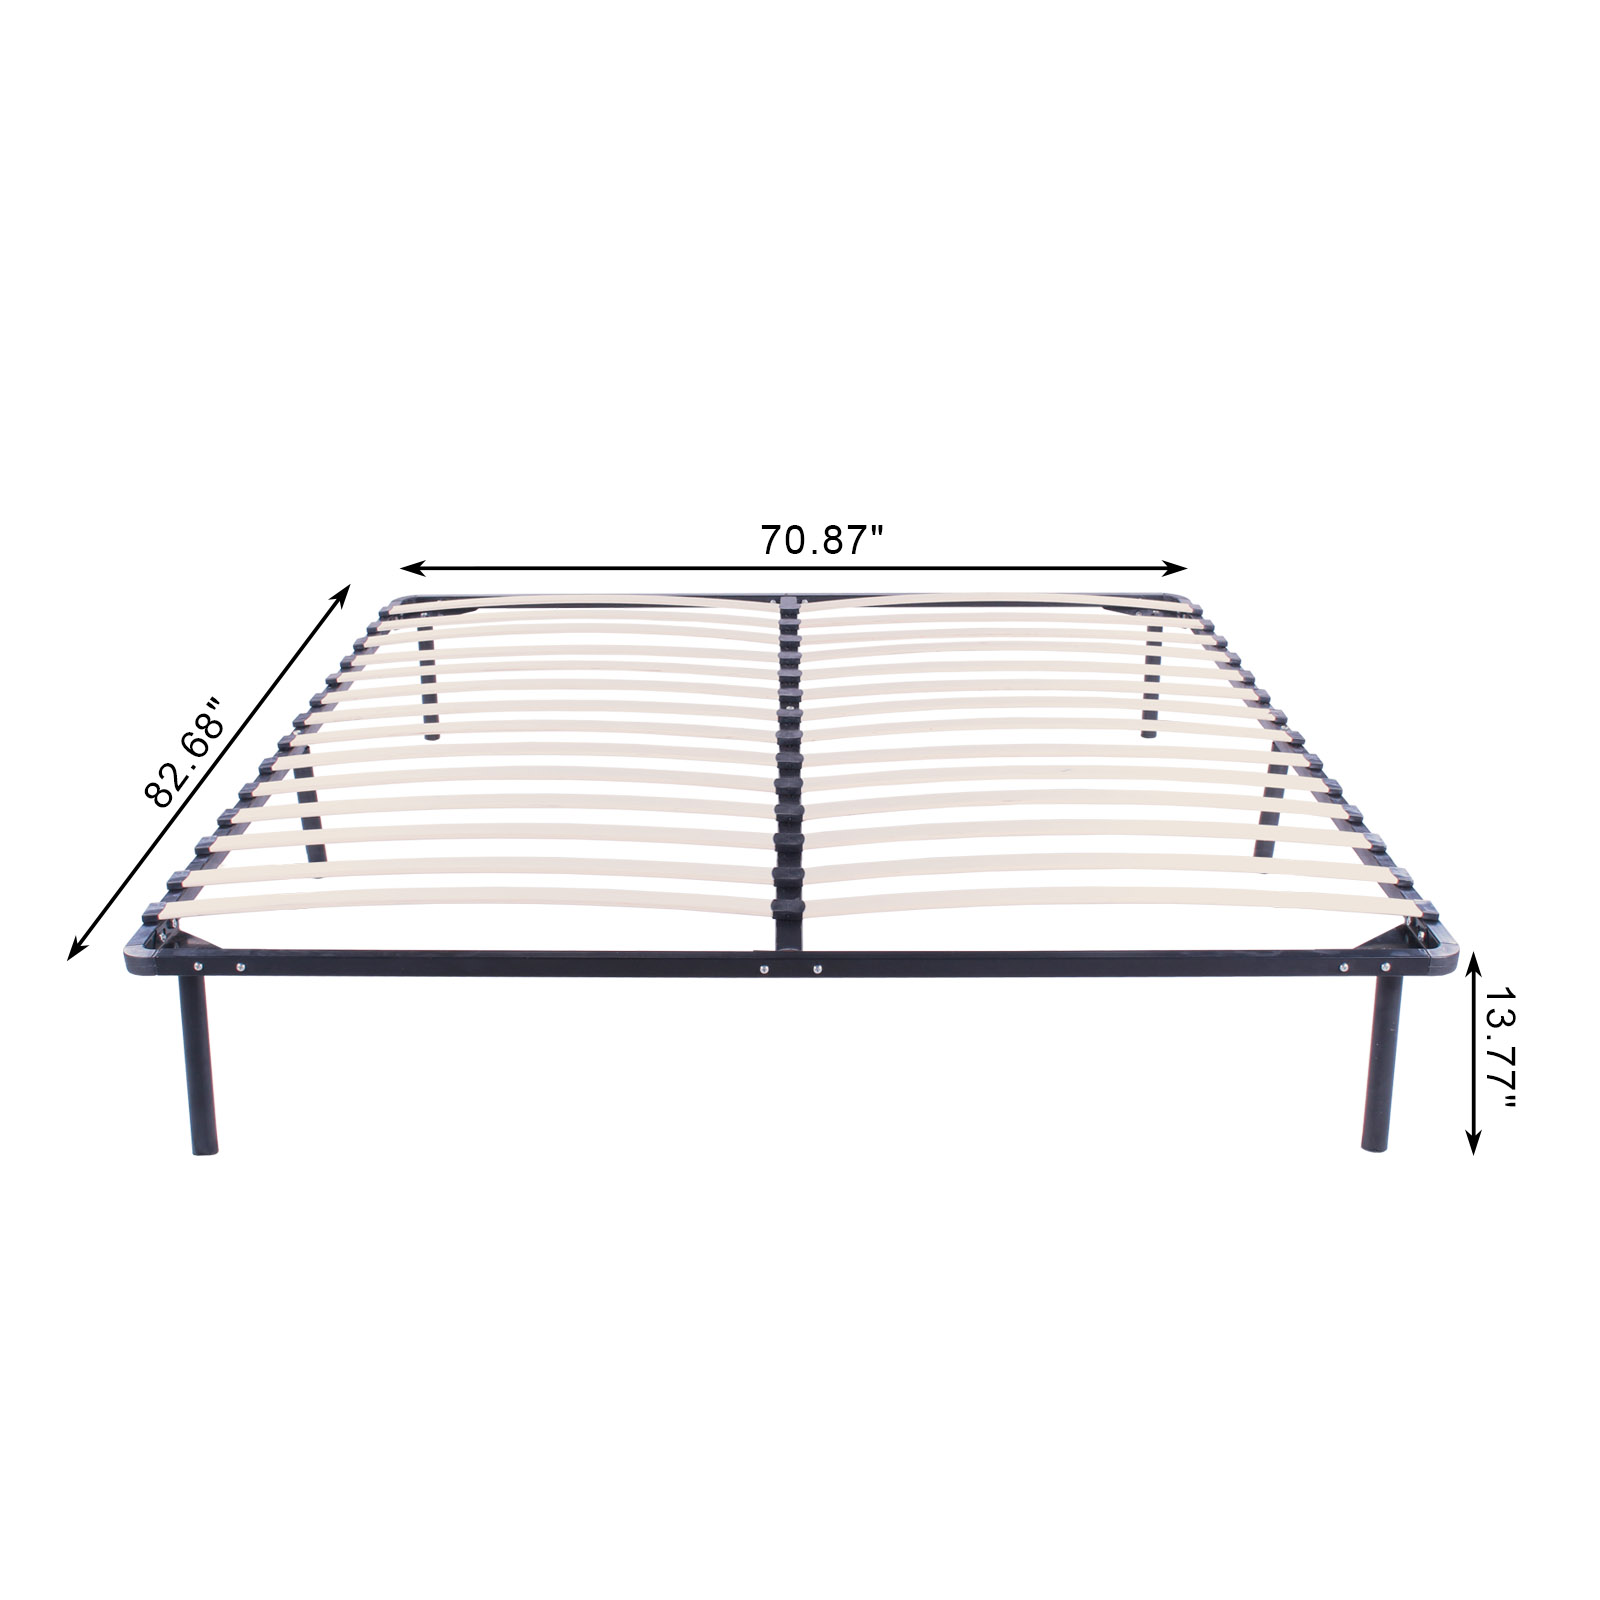 Cal King Size 83 X71 X14 7 Legs Metal Bed Frame Mattress